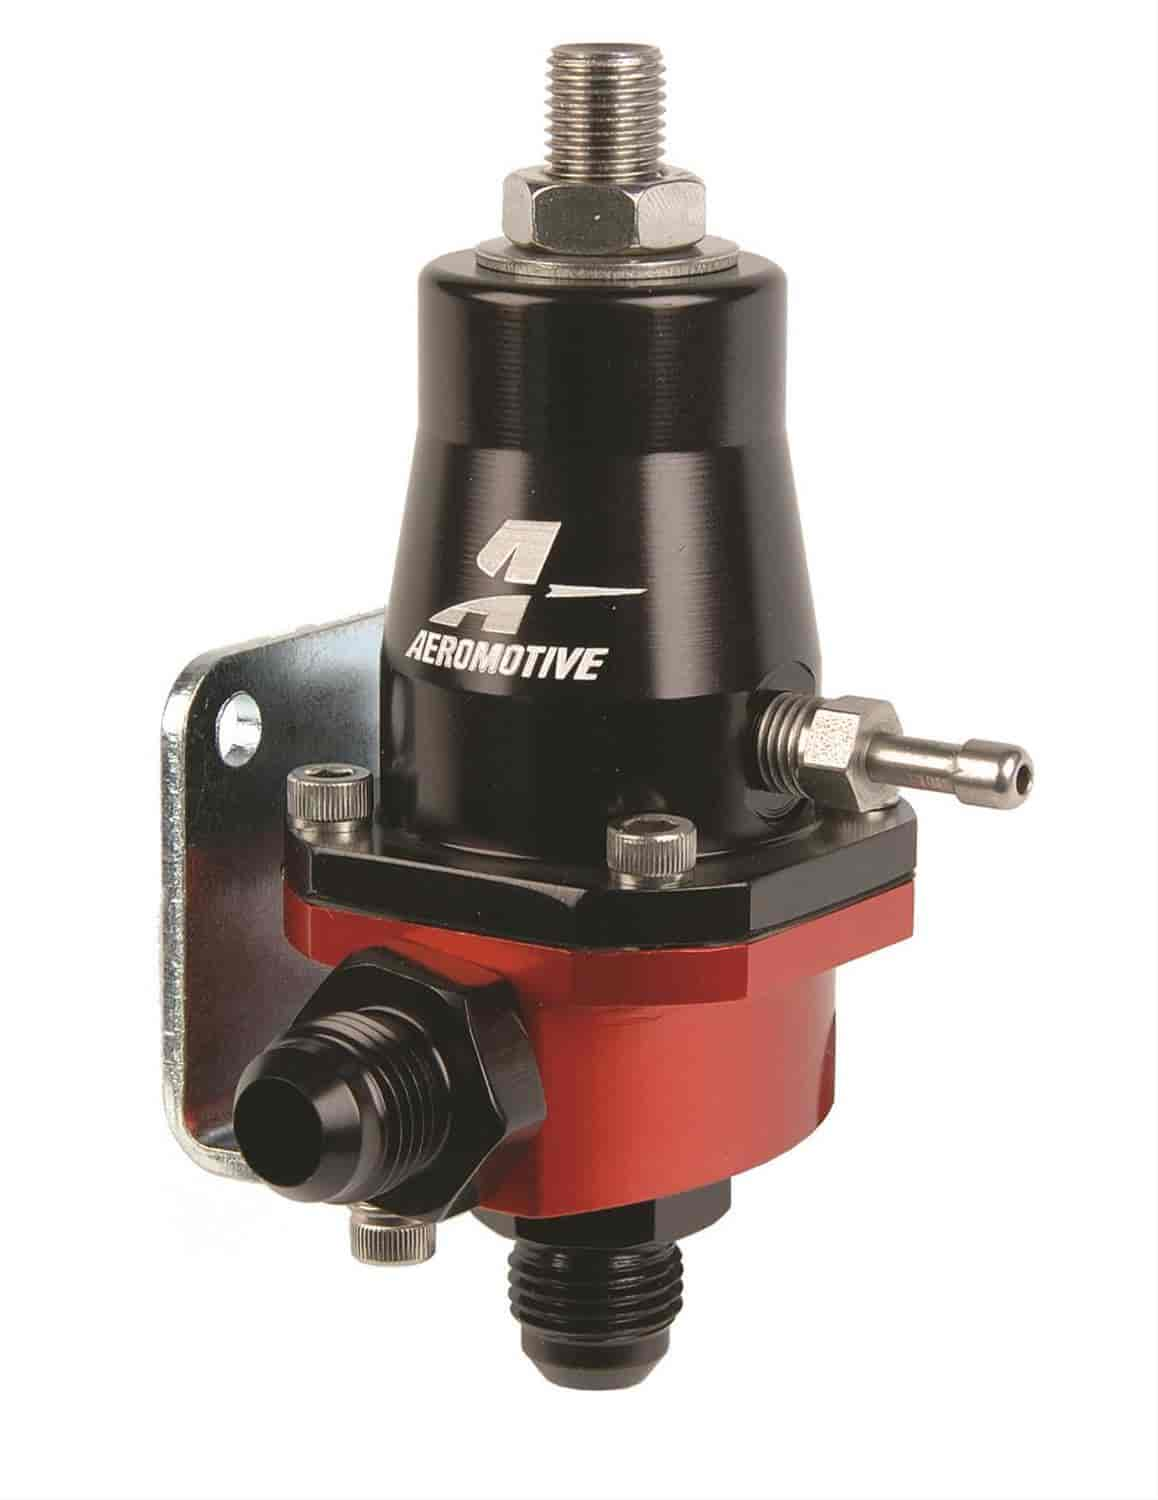 Aeromotive 13105 - Aeromotive Compact EFI Fuel Pressure Regulator